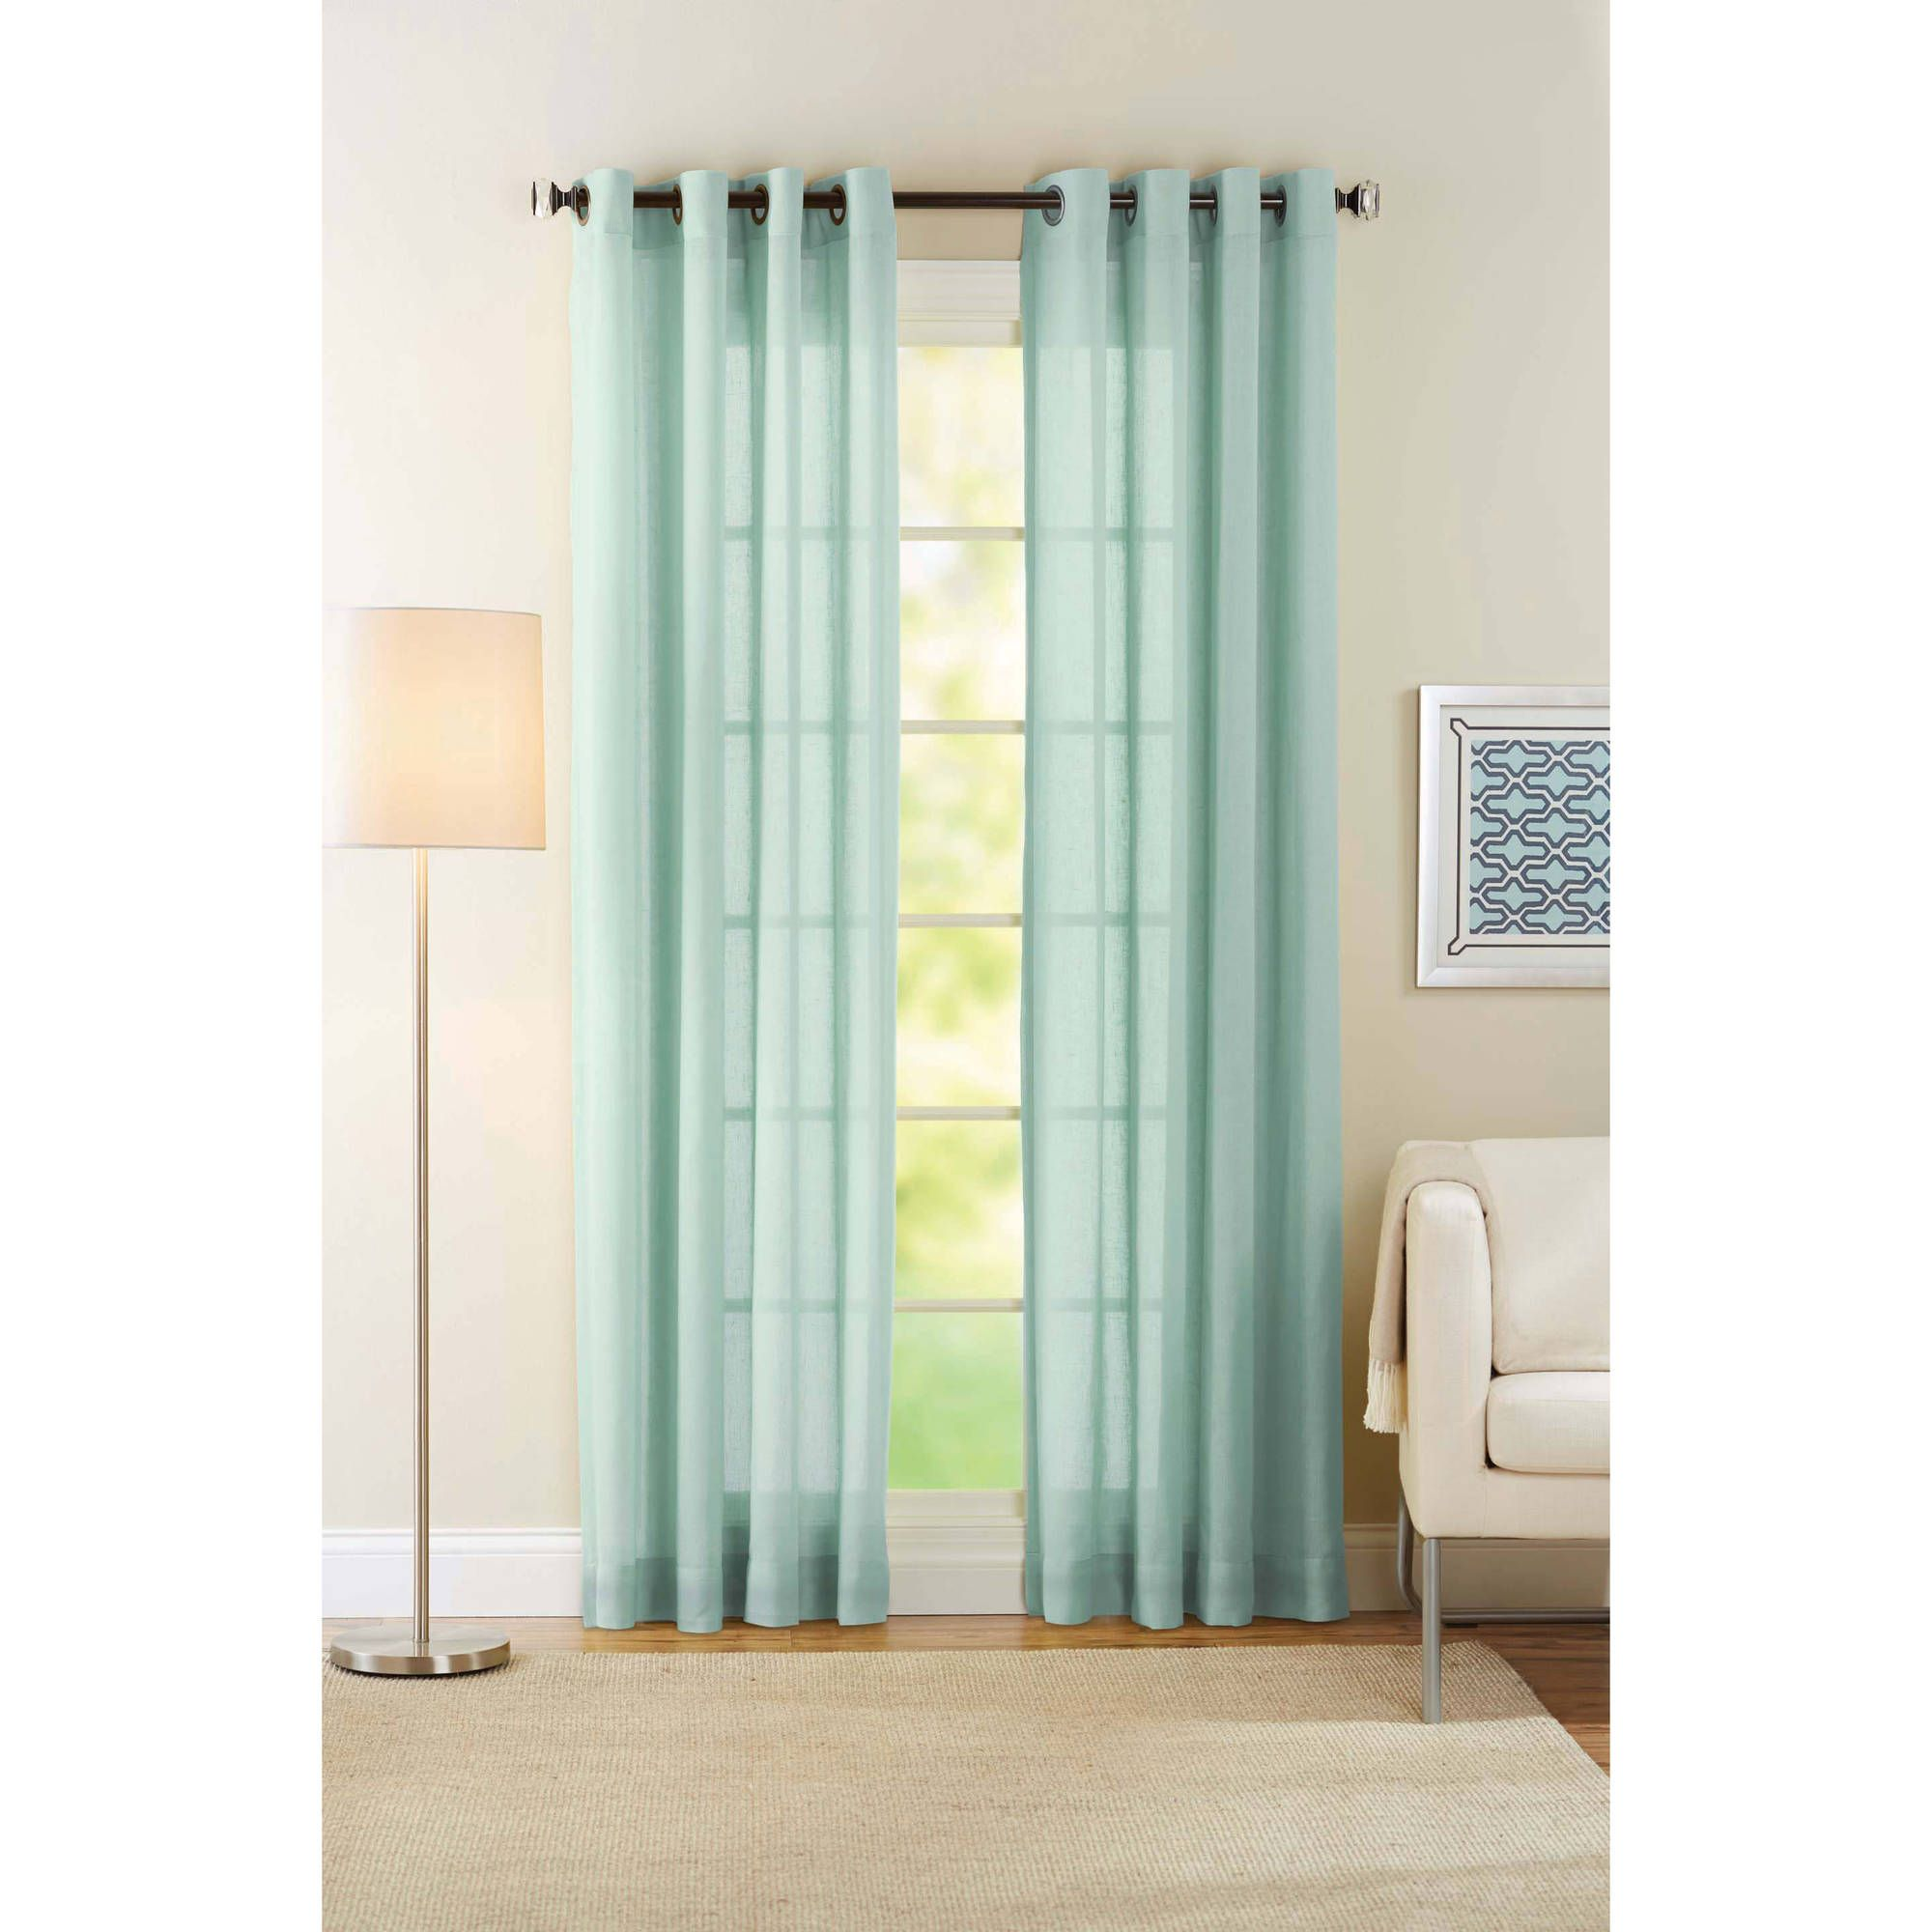 cf313614ddda82bd641999b46541d12a - Better Homes And Gardens Wide Sheer Panel